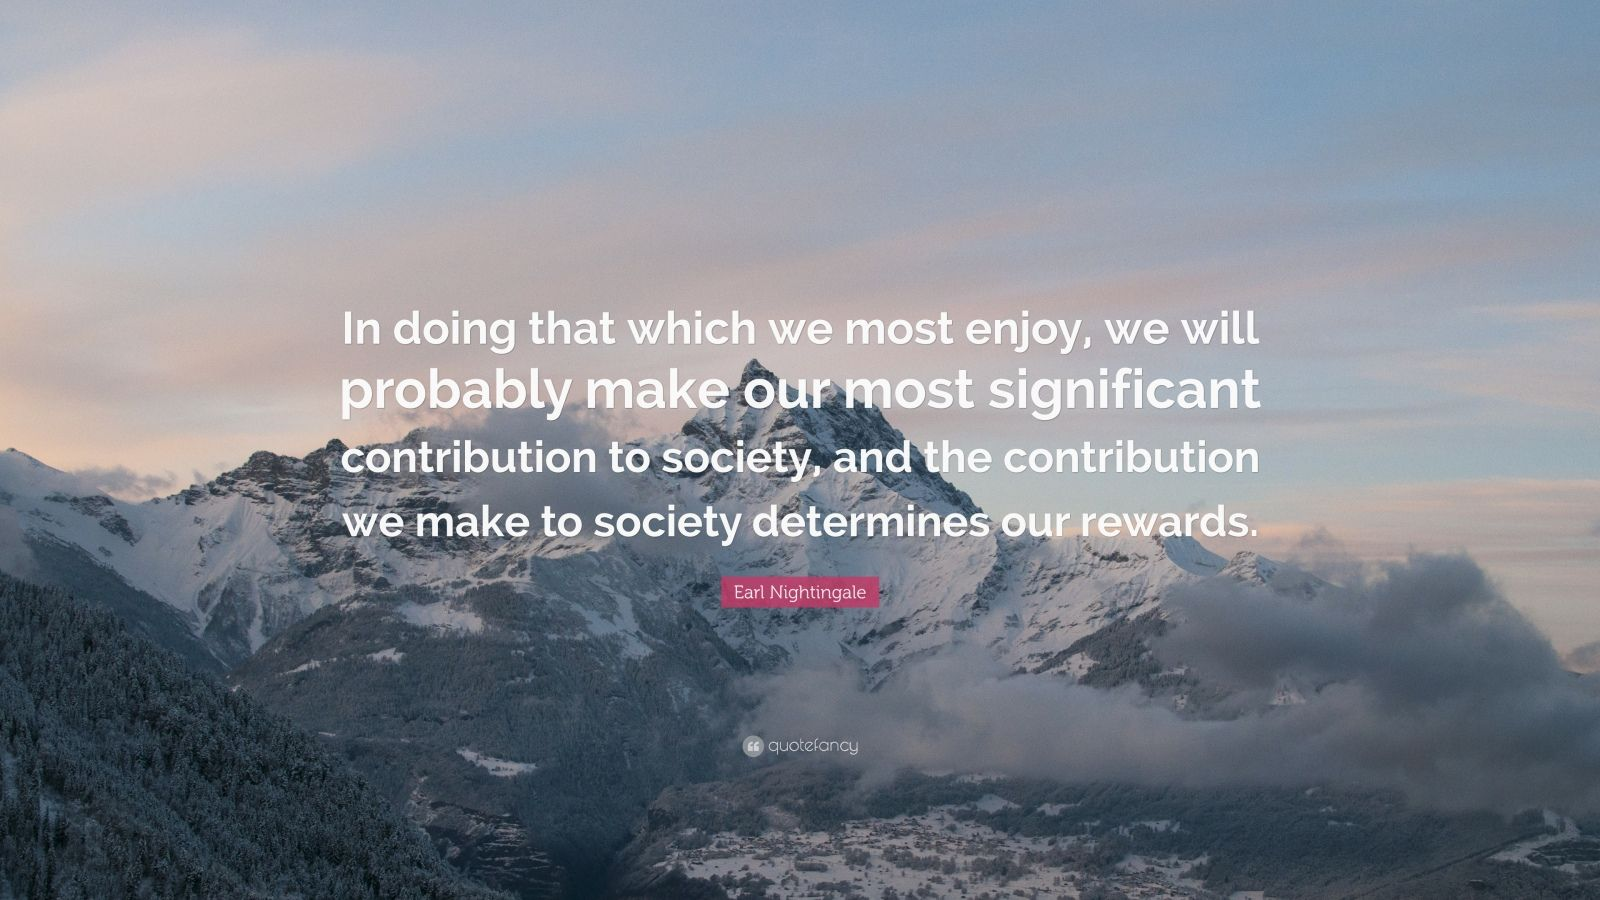 """Earl Nightingale Quote: """"In doing that which we most enjoy, we will probably make our most significant contribution to society, and the contribution we make to society determines our rewards."""""""